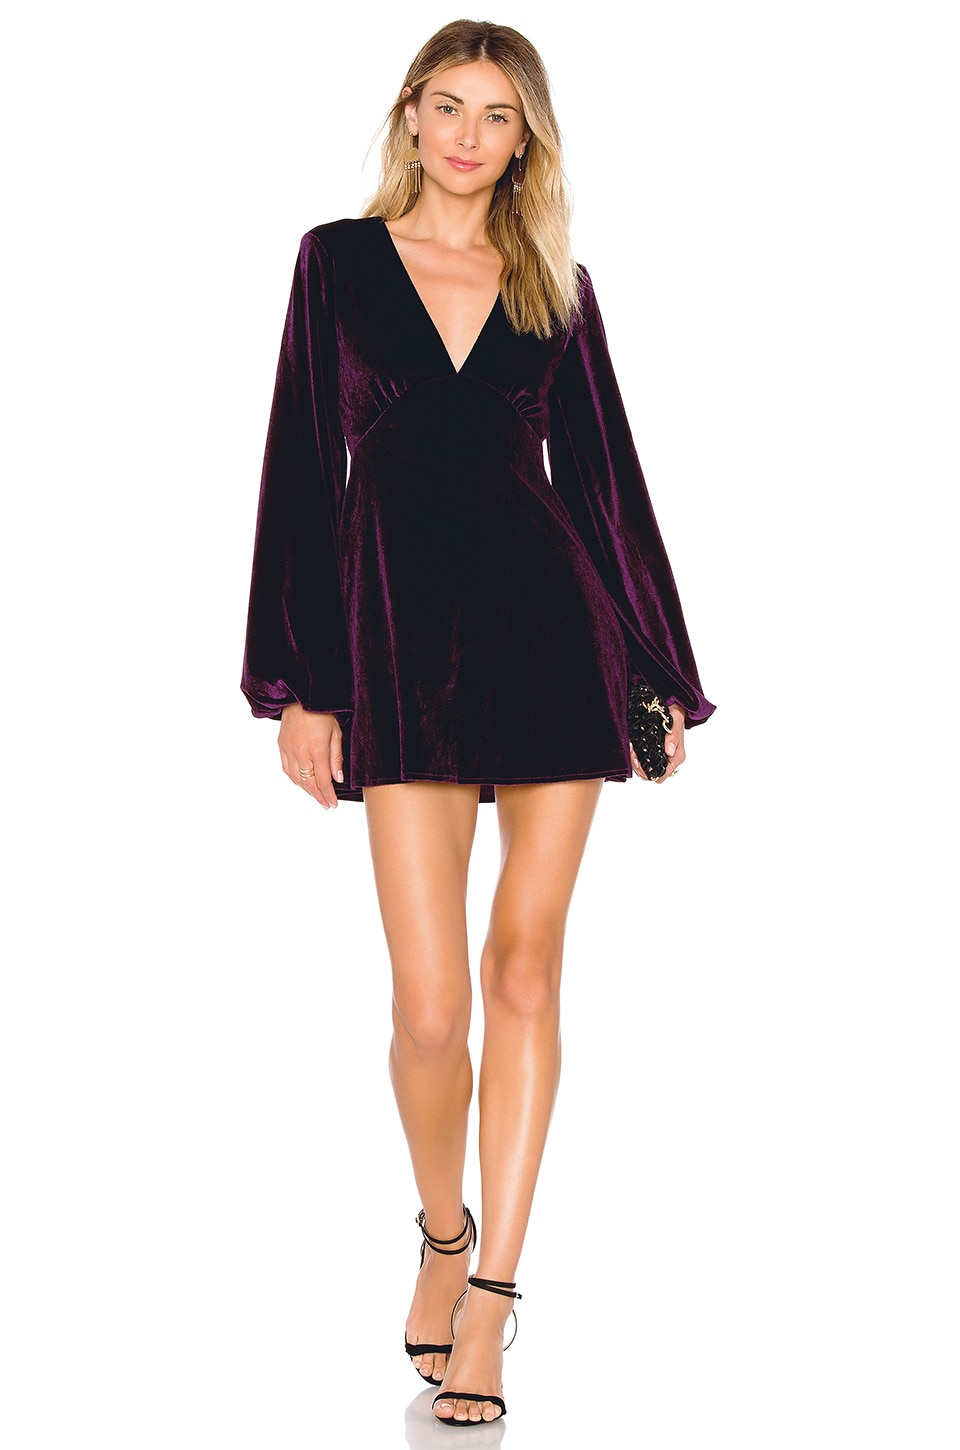 Tularosa Ryland Dress in Plum